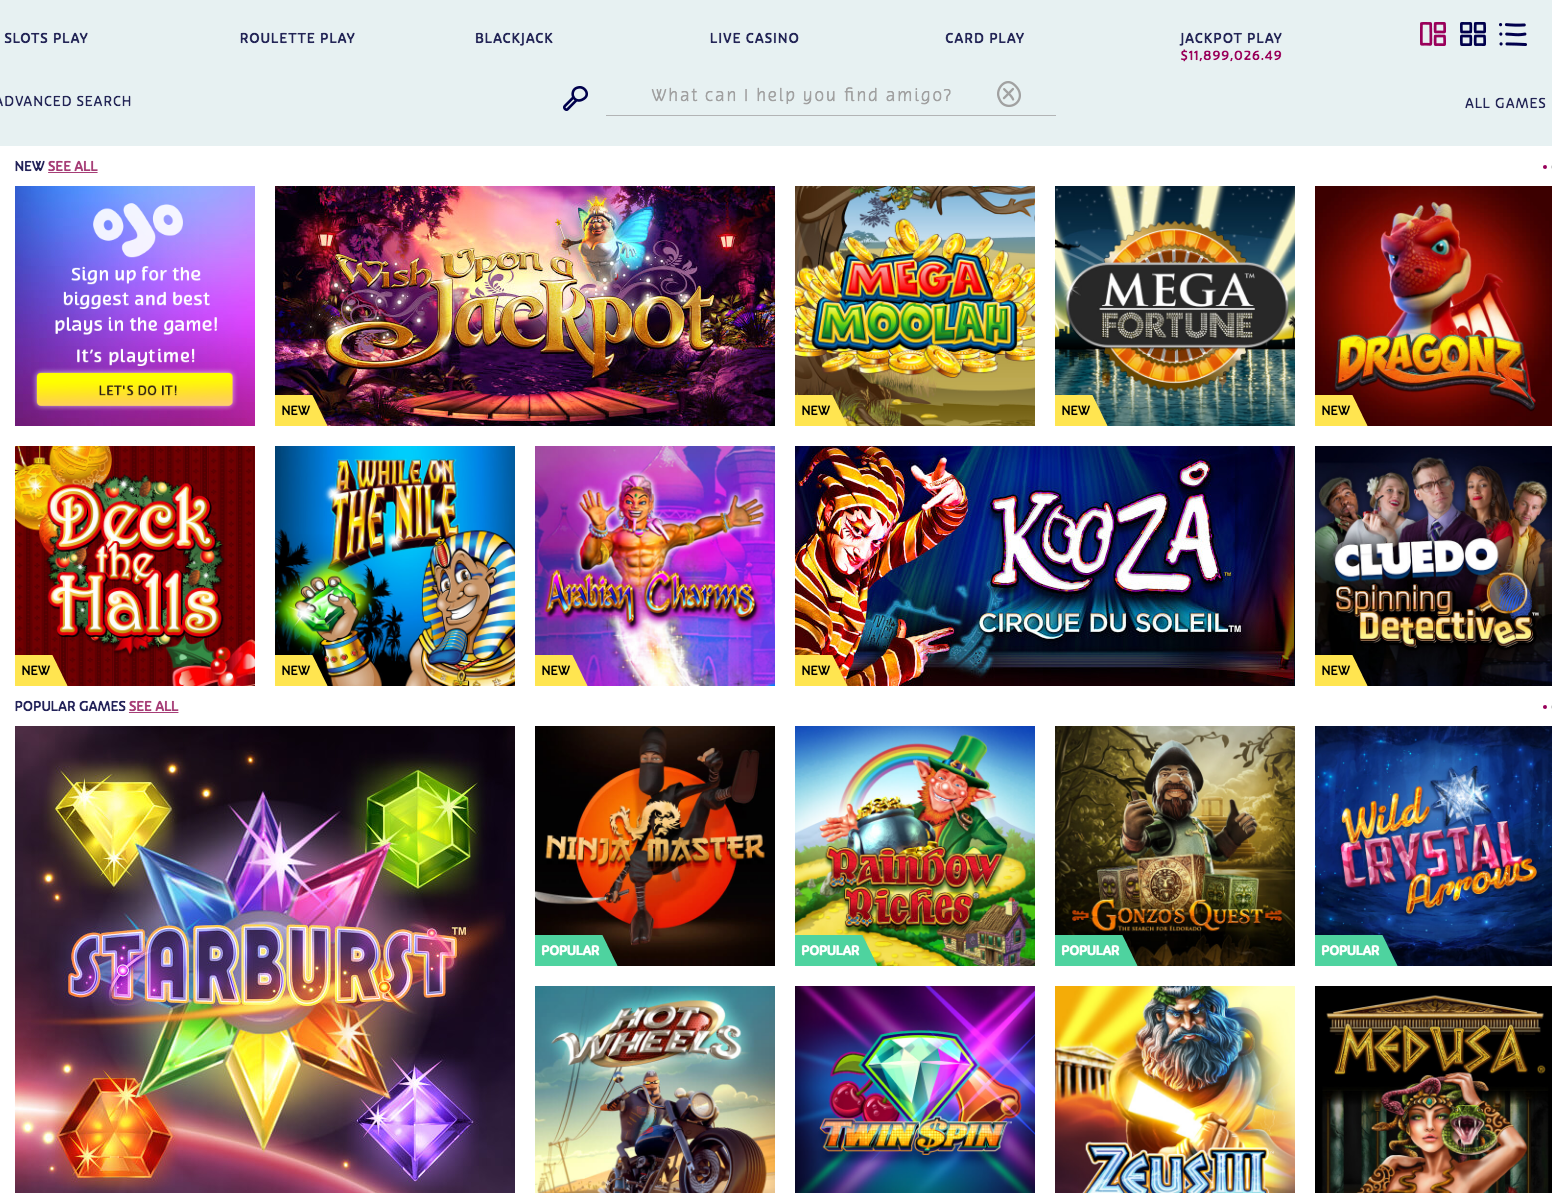 Casinomeister Archives - Get Free Spins at the Best UK Online Casino | PlayOJO